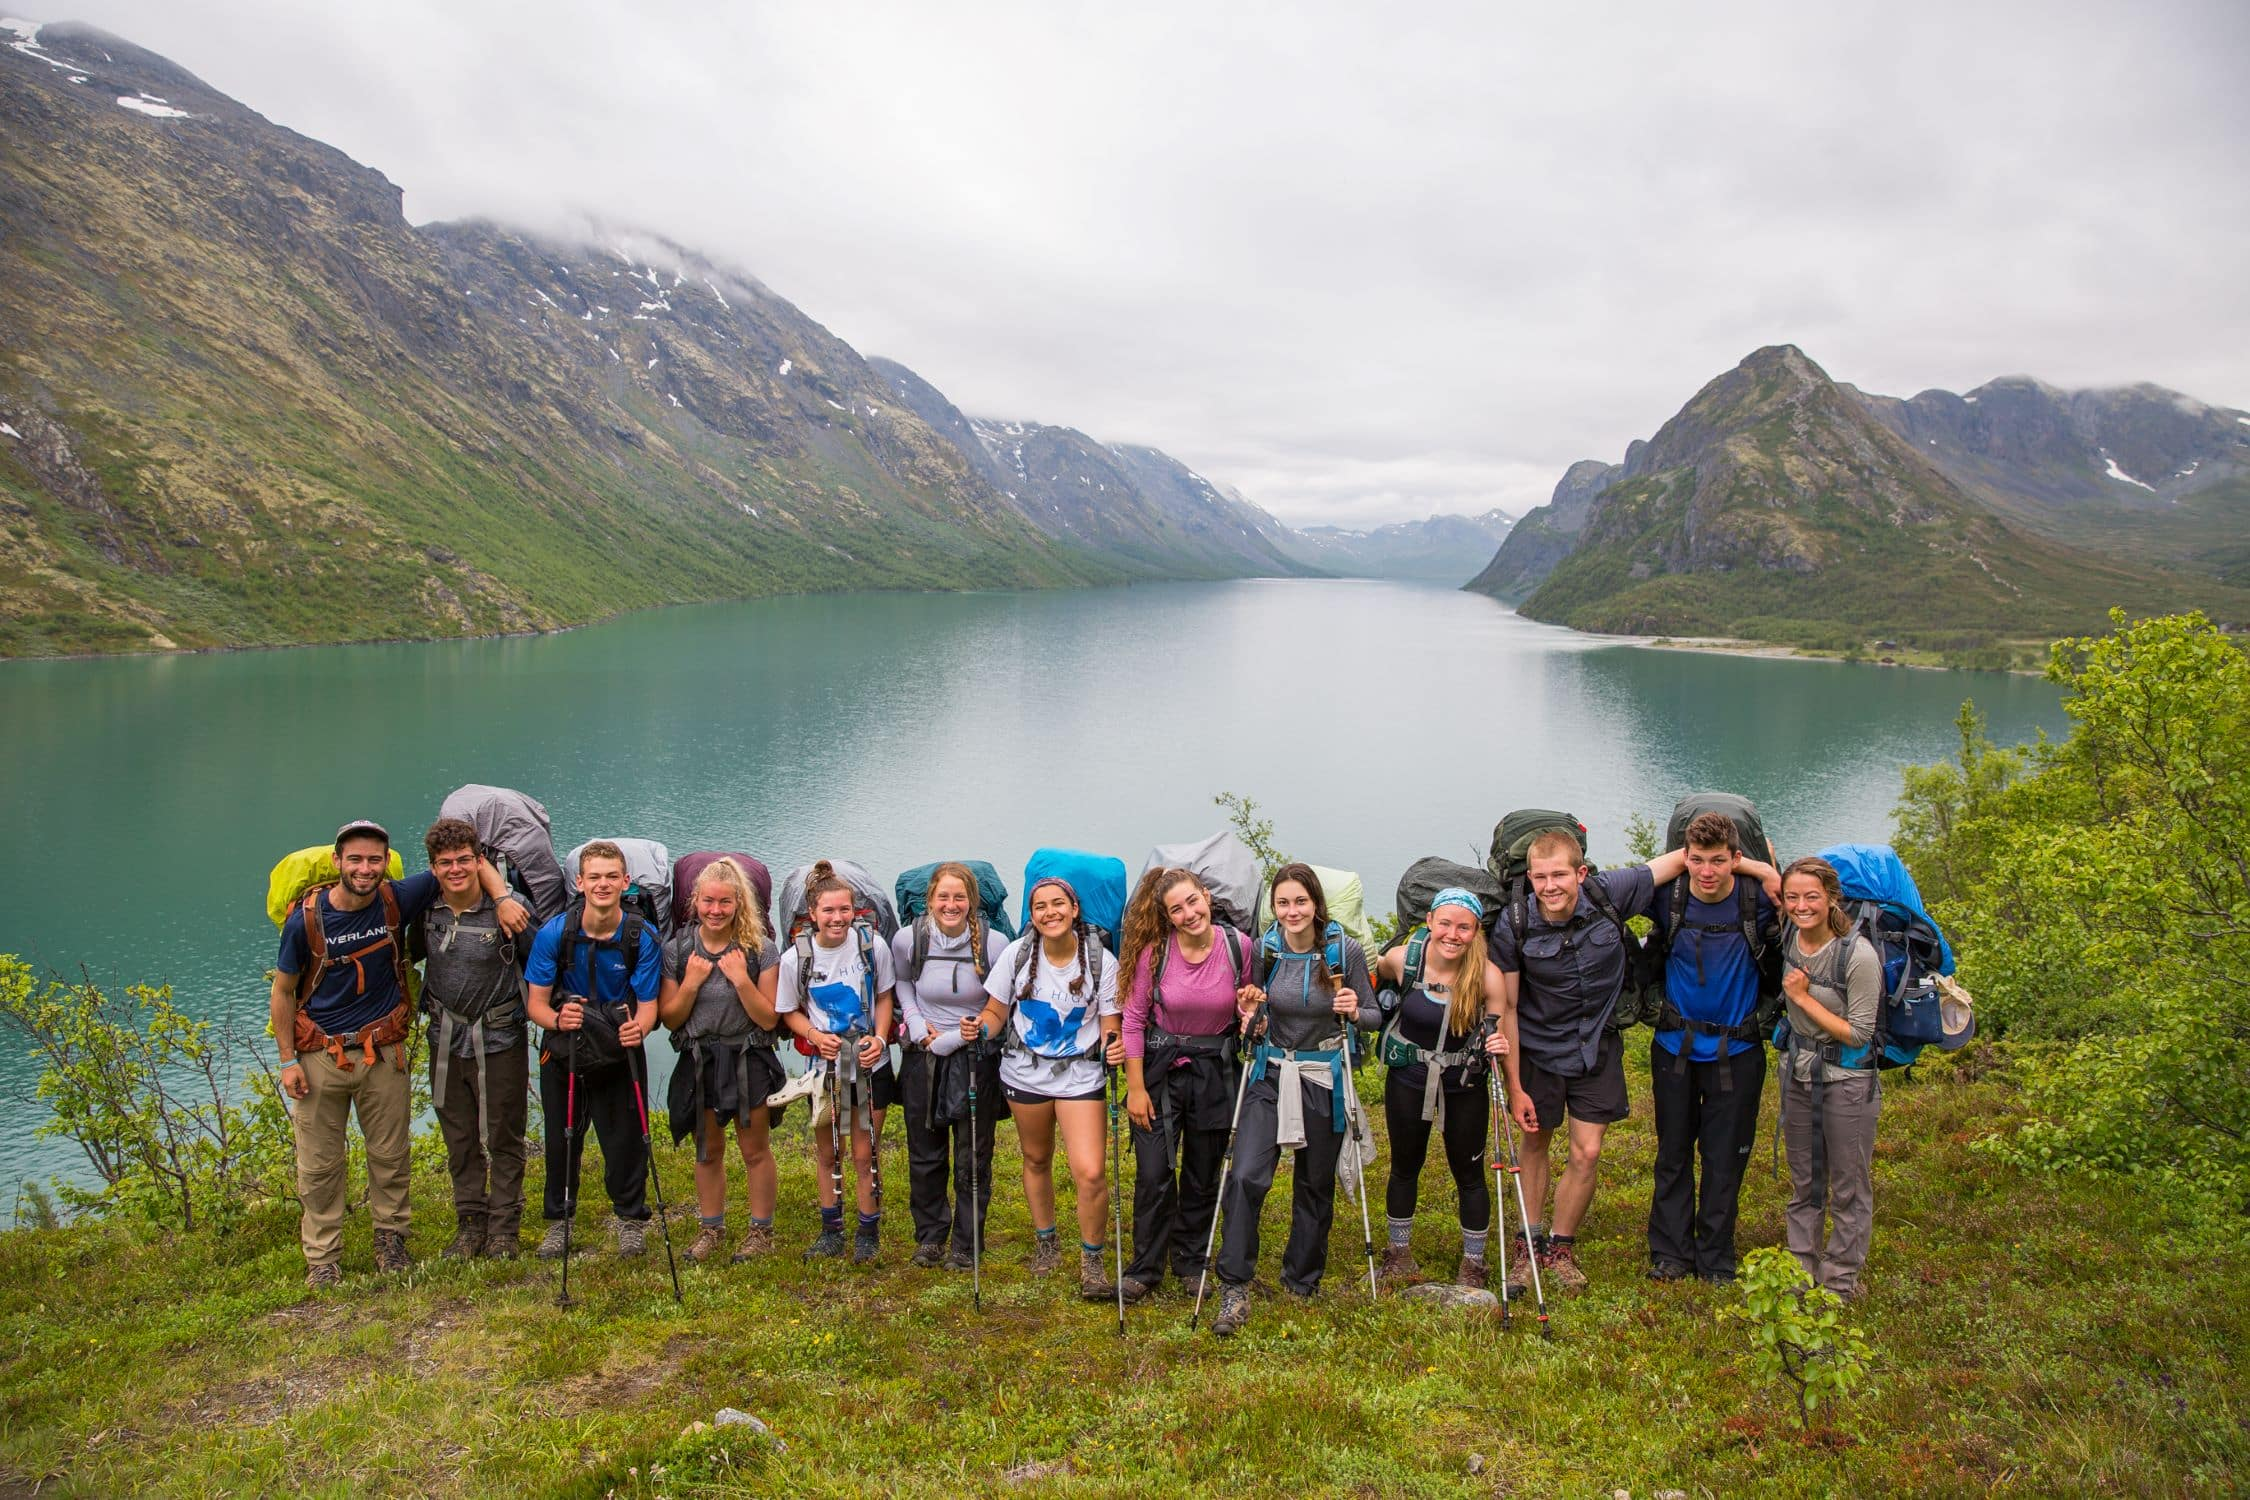 Hikers take a group photo in front of a fjord this summer on a trip to Norway